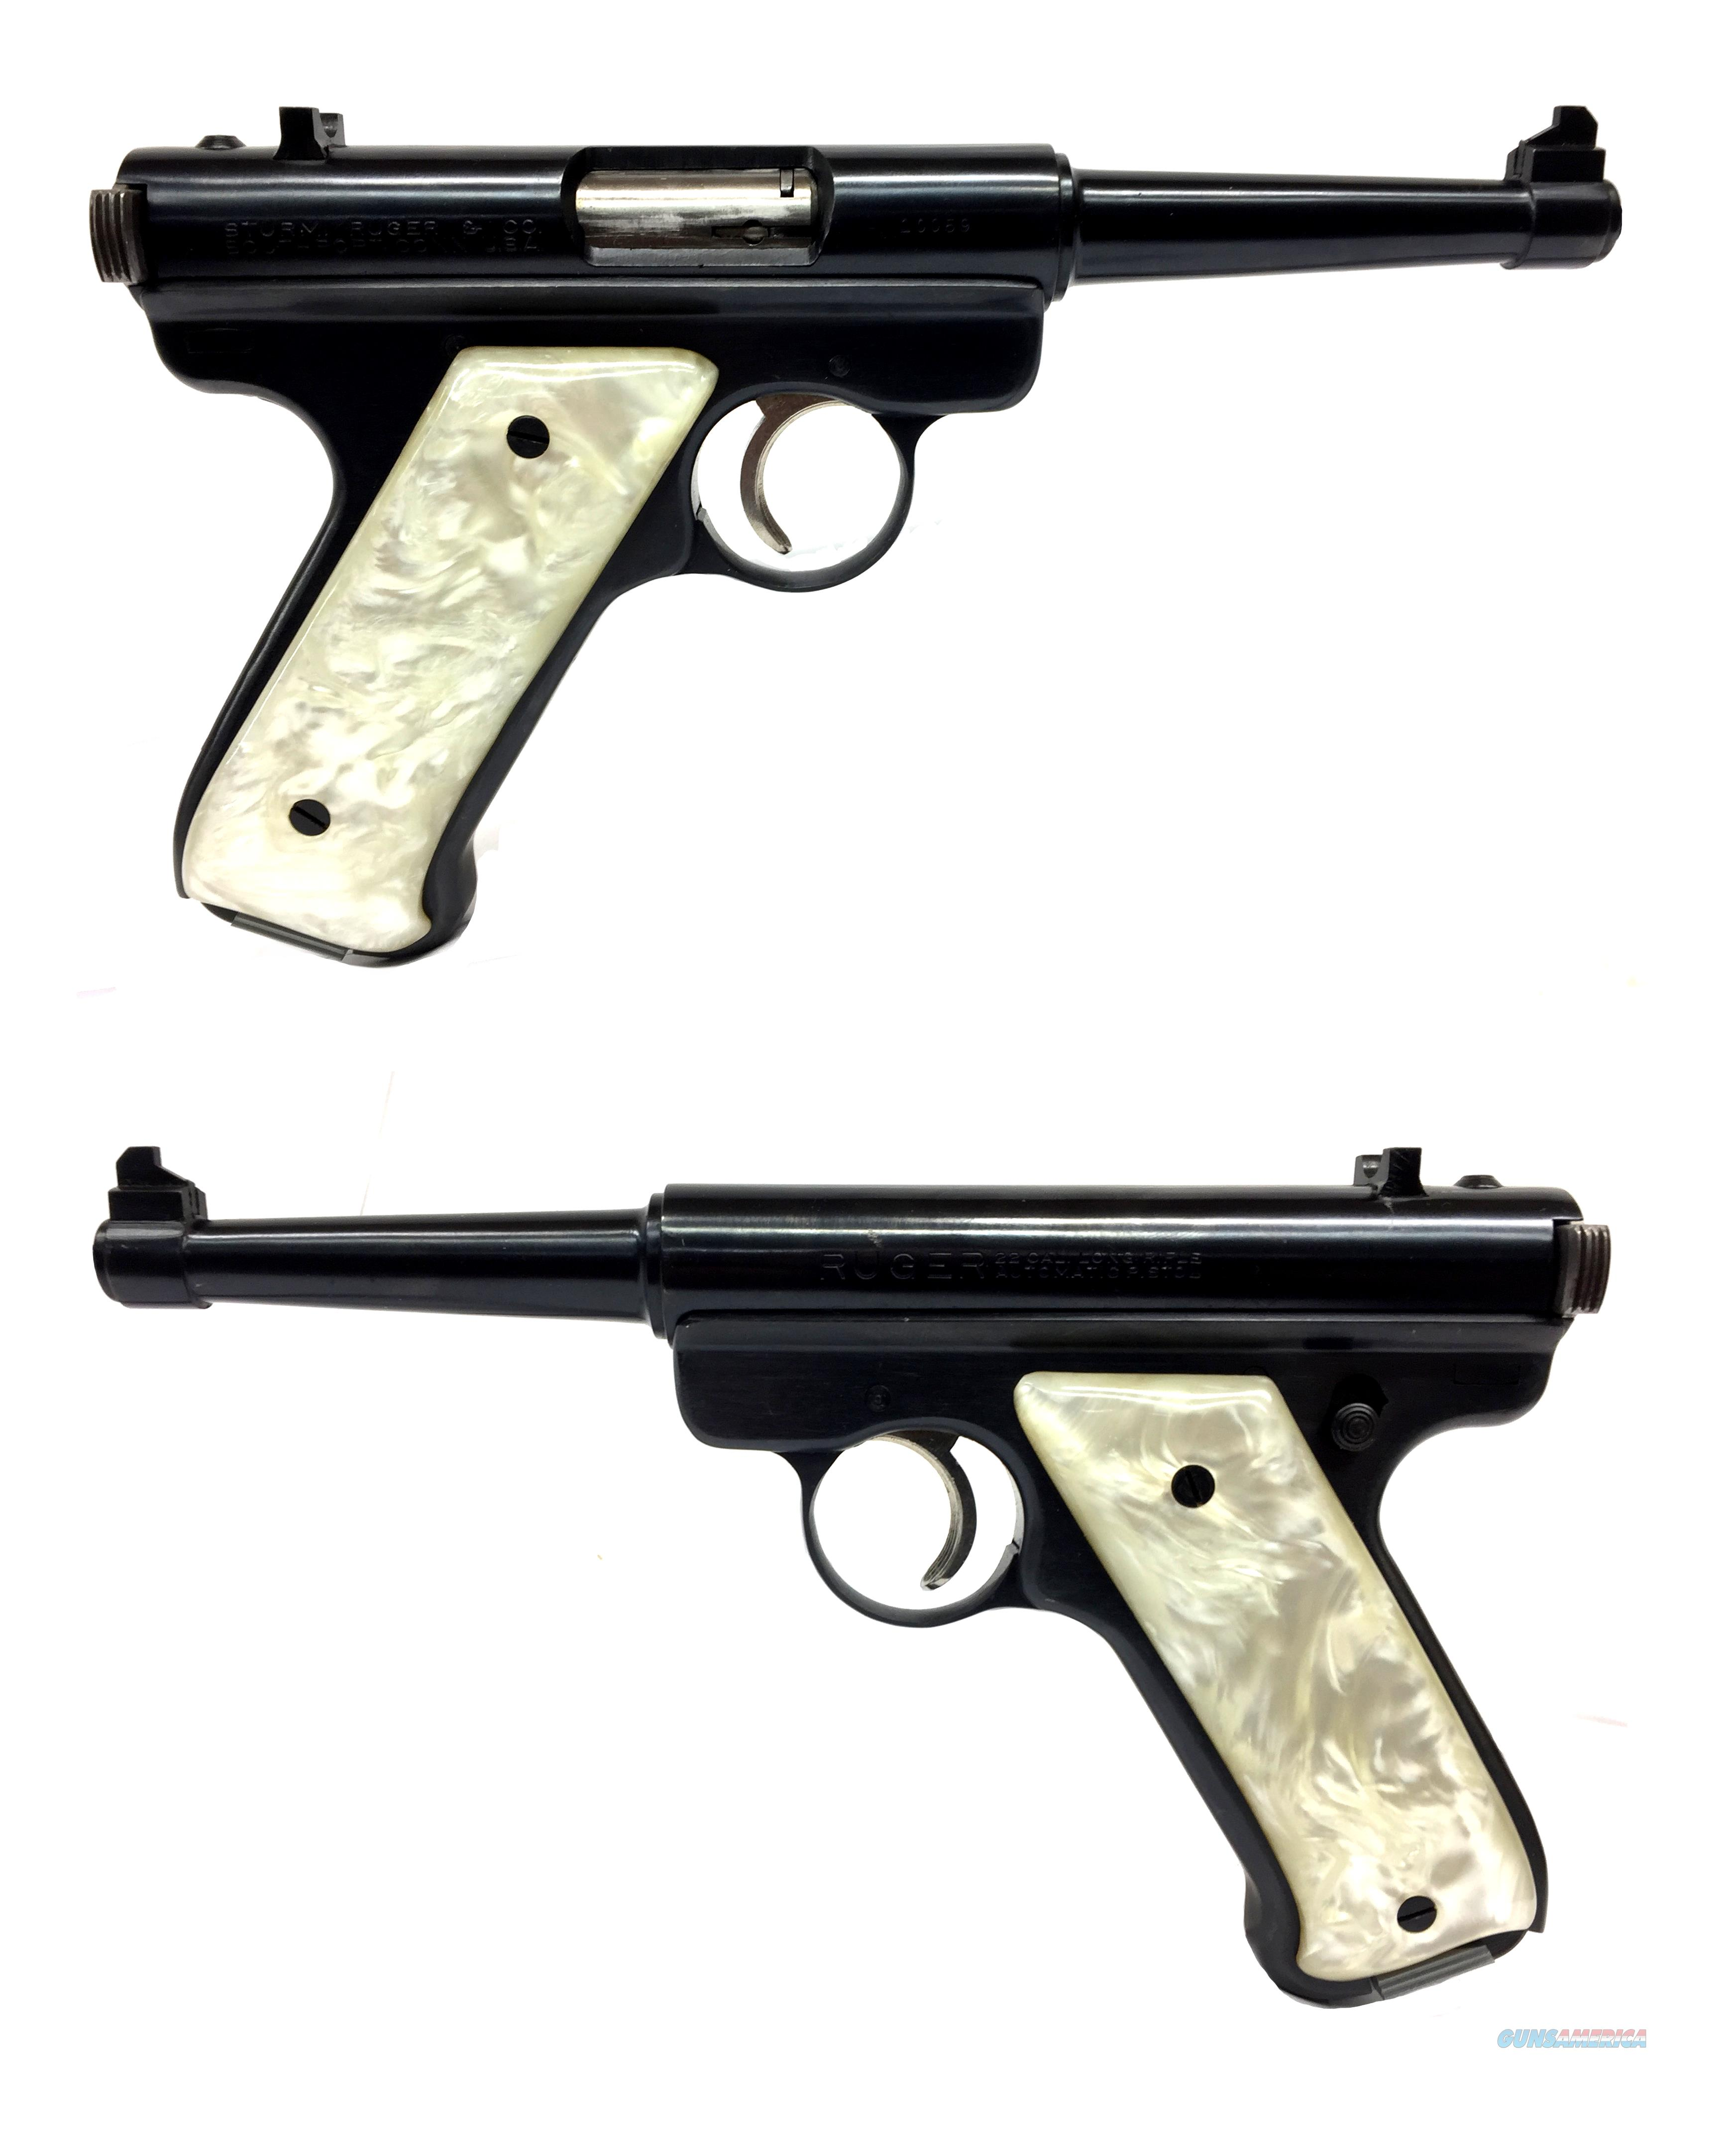 Ruger Red Eagle Standard .22LR Semi-Automatic Pistol  Guns > Pistols > Ruger Semi-Auto Pistols > Mark I/II/III/IV Family